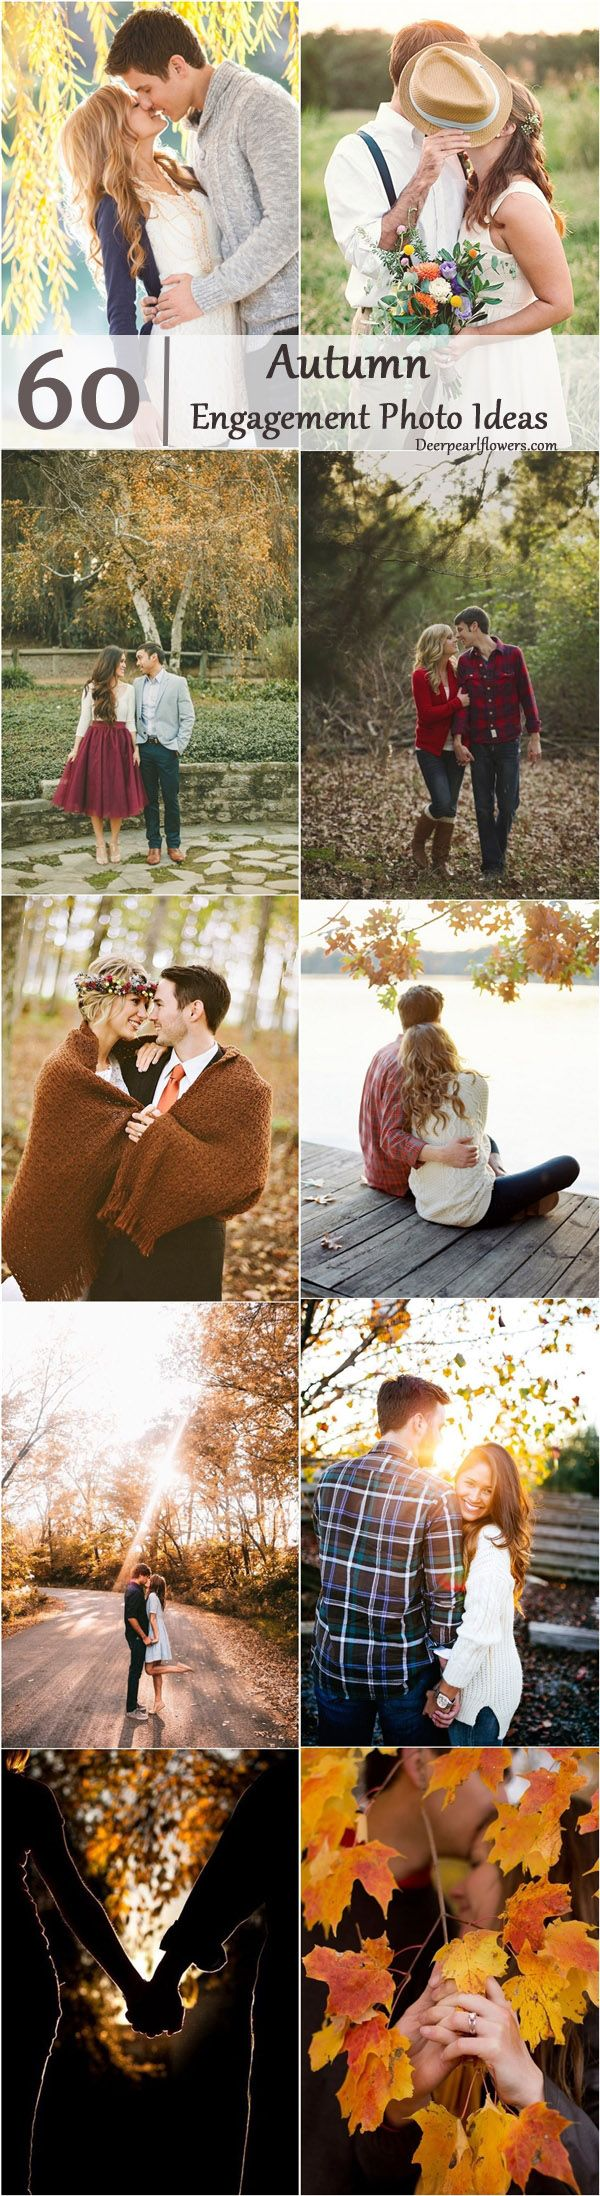 Fall Engagement Photo Poses Ideas…